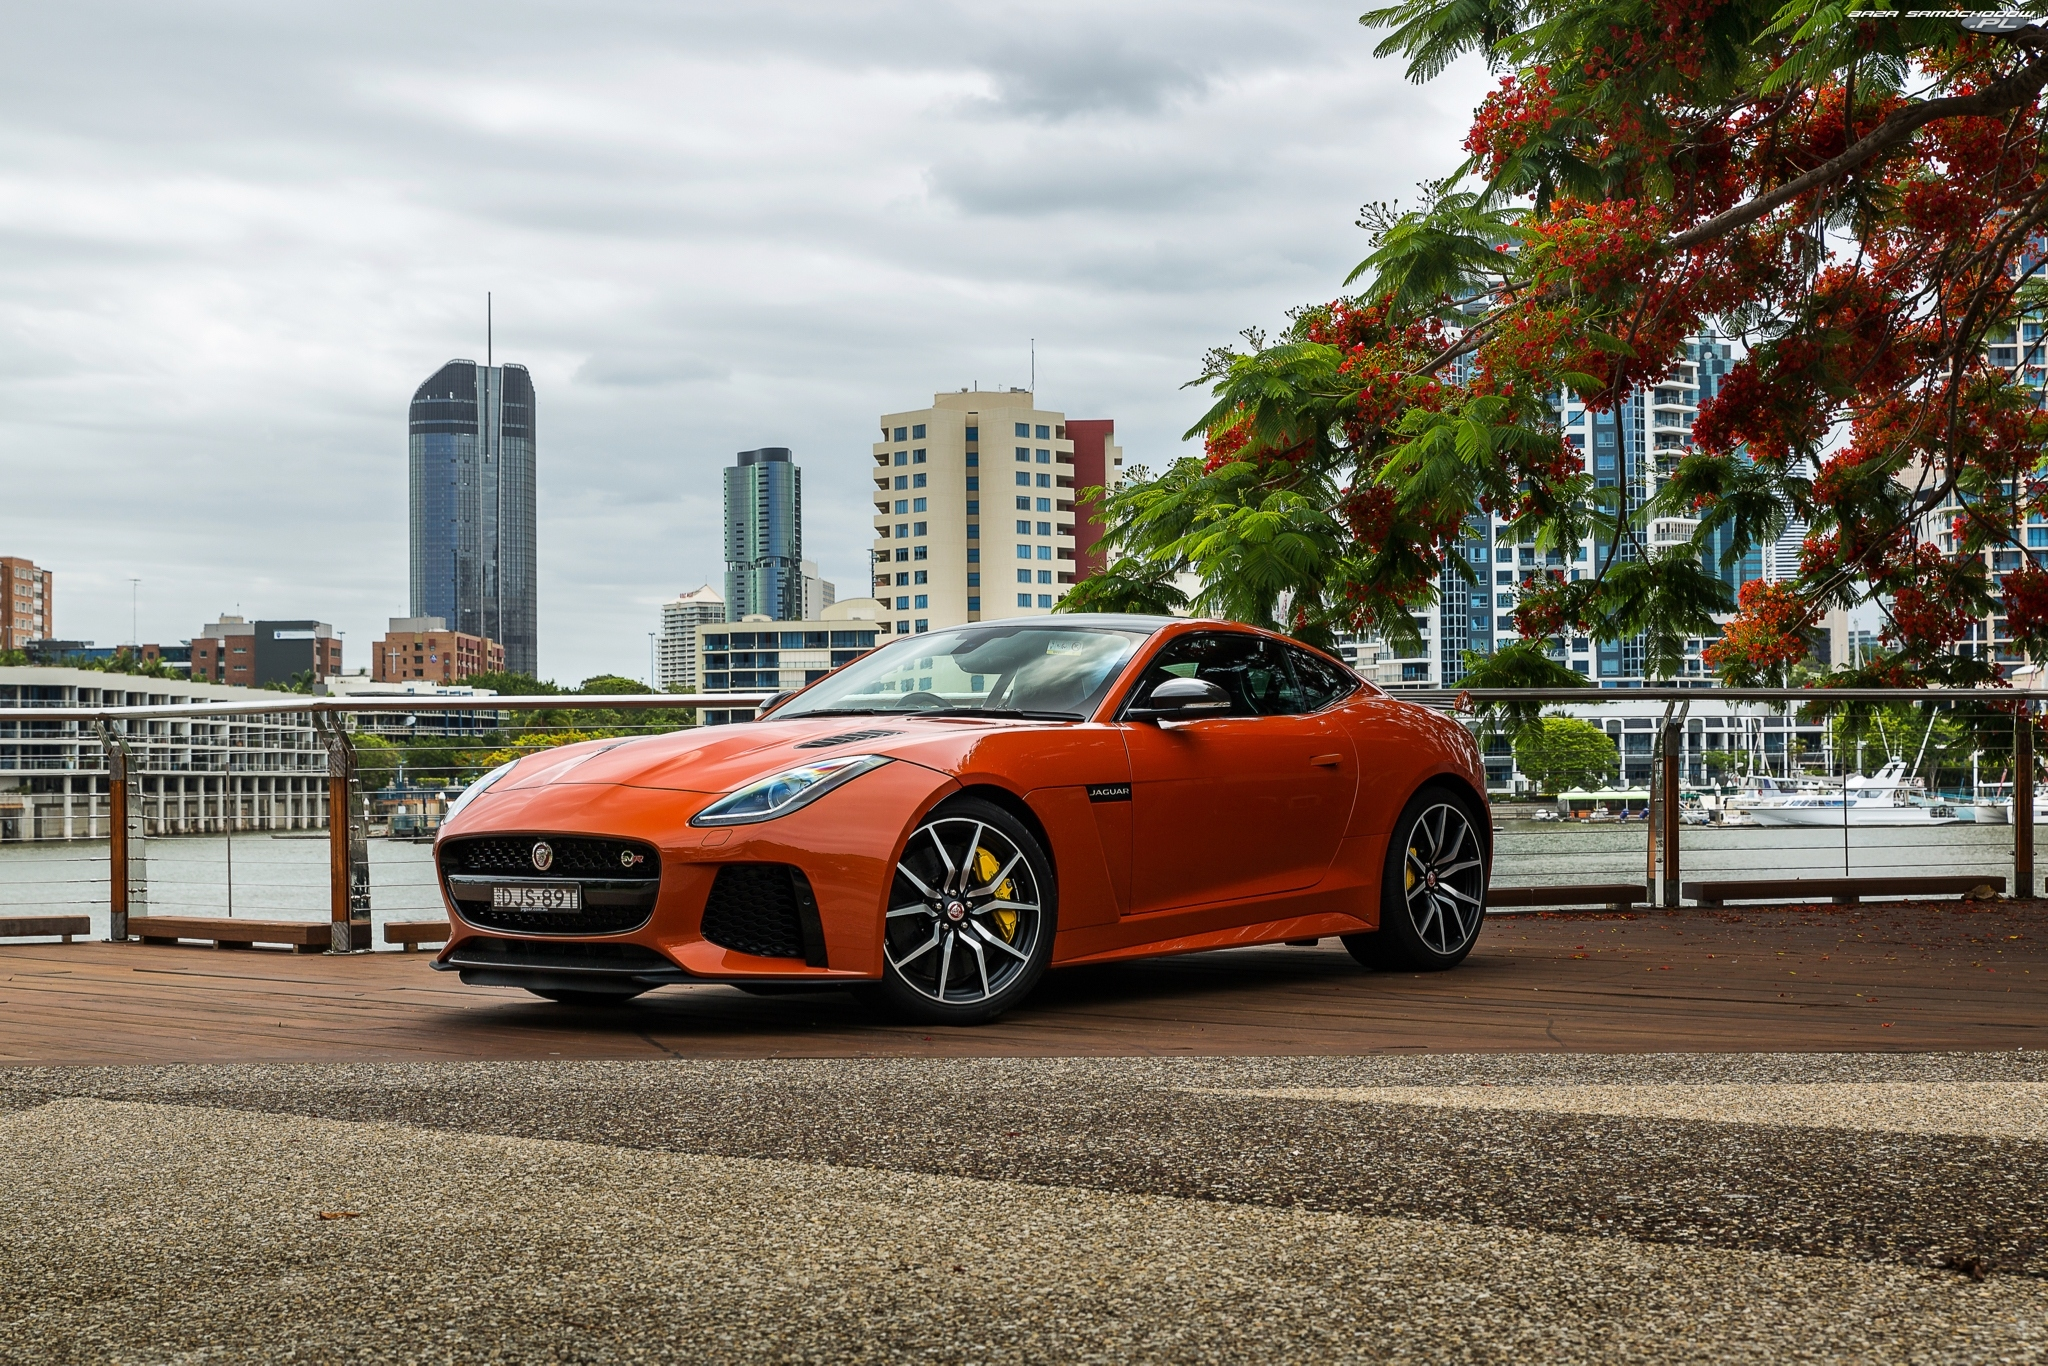 2016-2017, Jaguar F-Type SVR Coupe, Orange Metallic